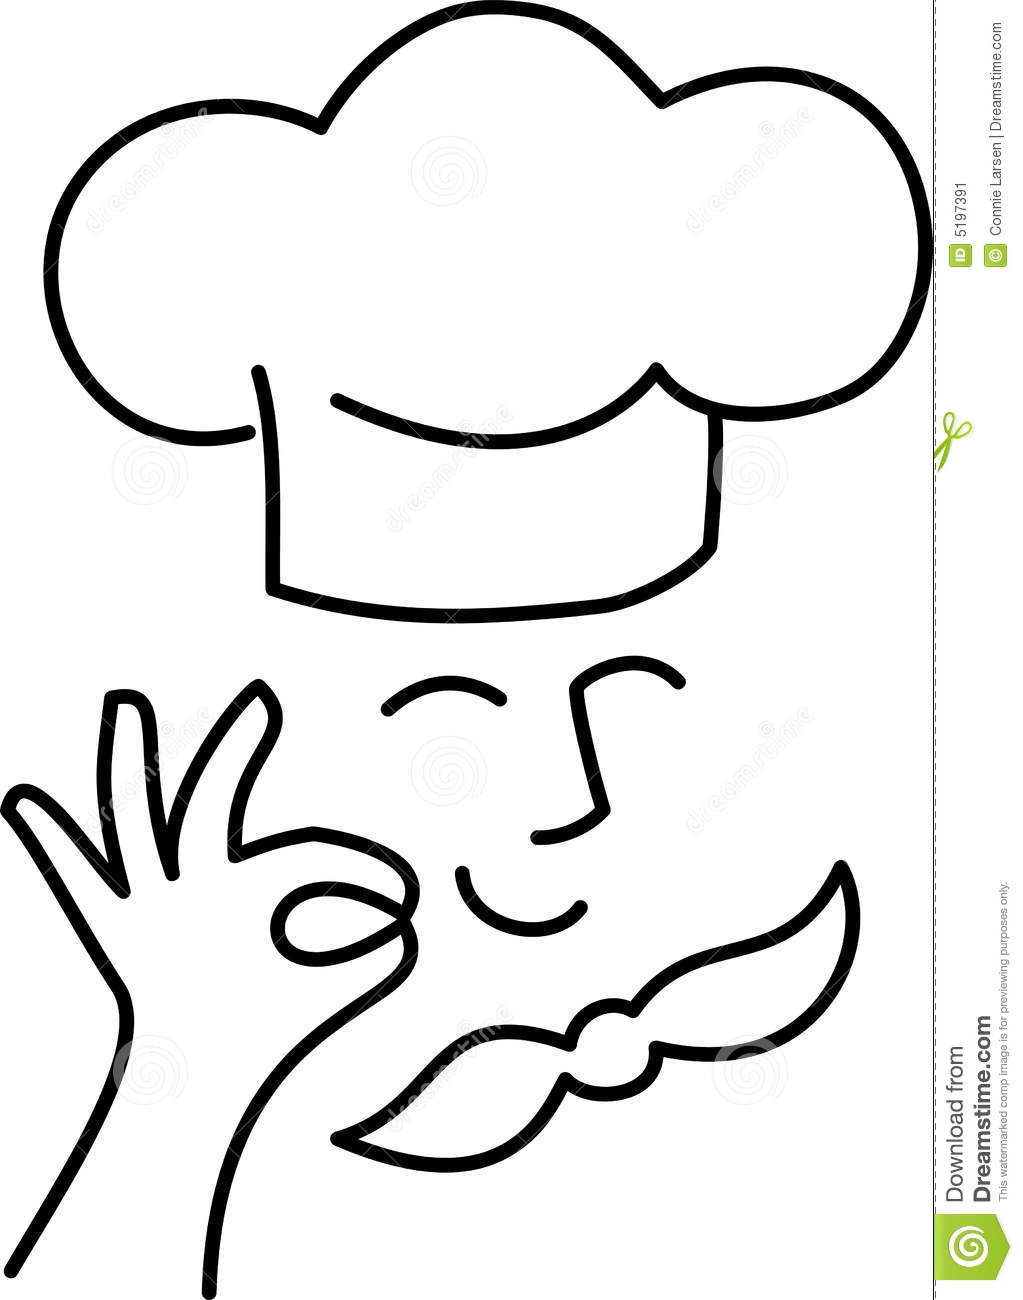 Free Chef Clipart moreover Bread 20clipart 20french 20food together with Sketchy Food Mix 827487 furthermore 2 Open Wings likewise Bbq Silhouette Cliparts. on cooking vector graphics